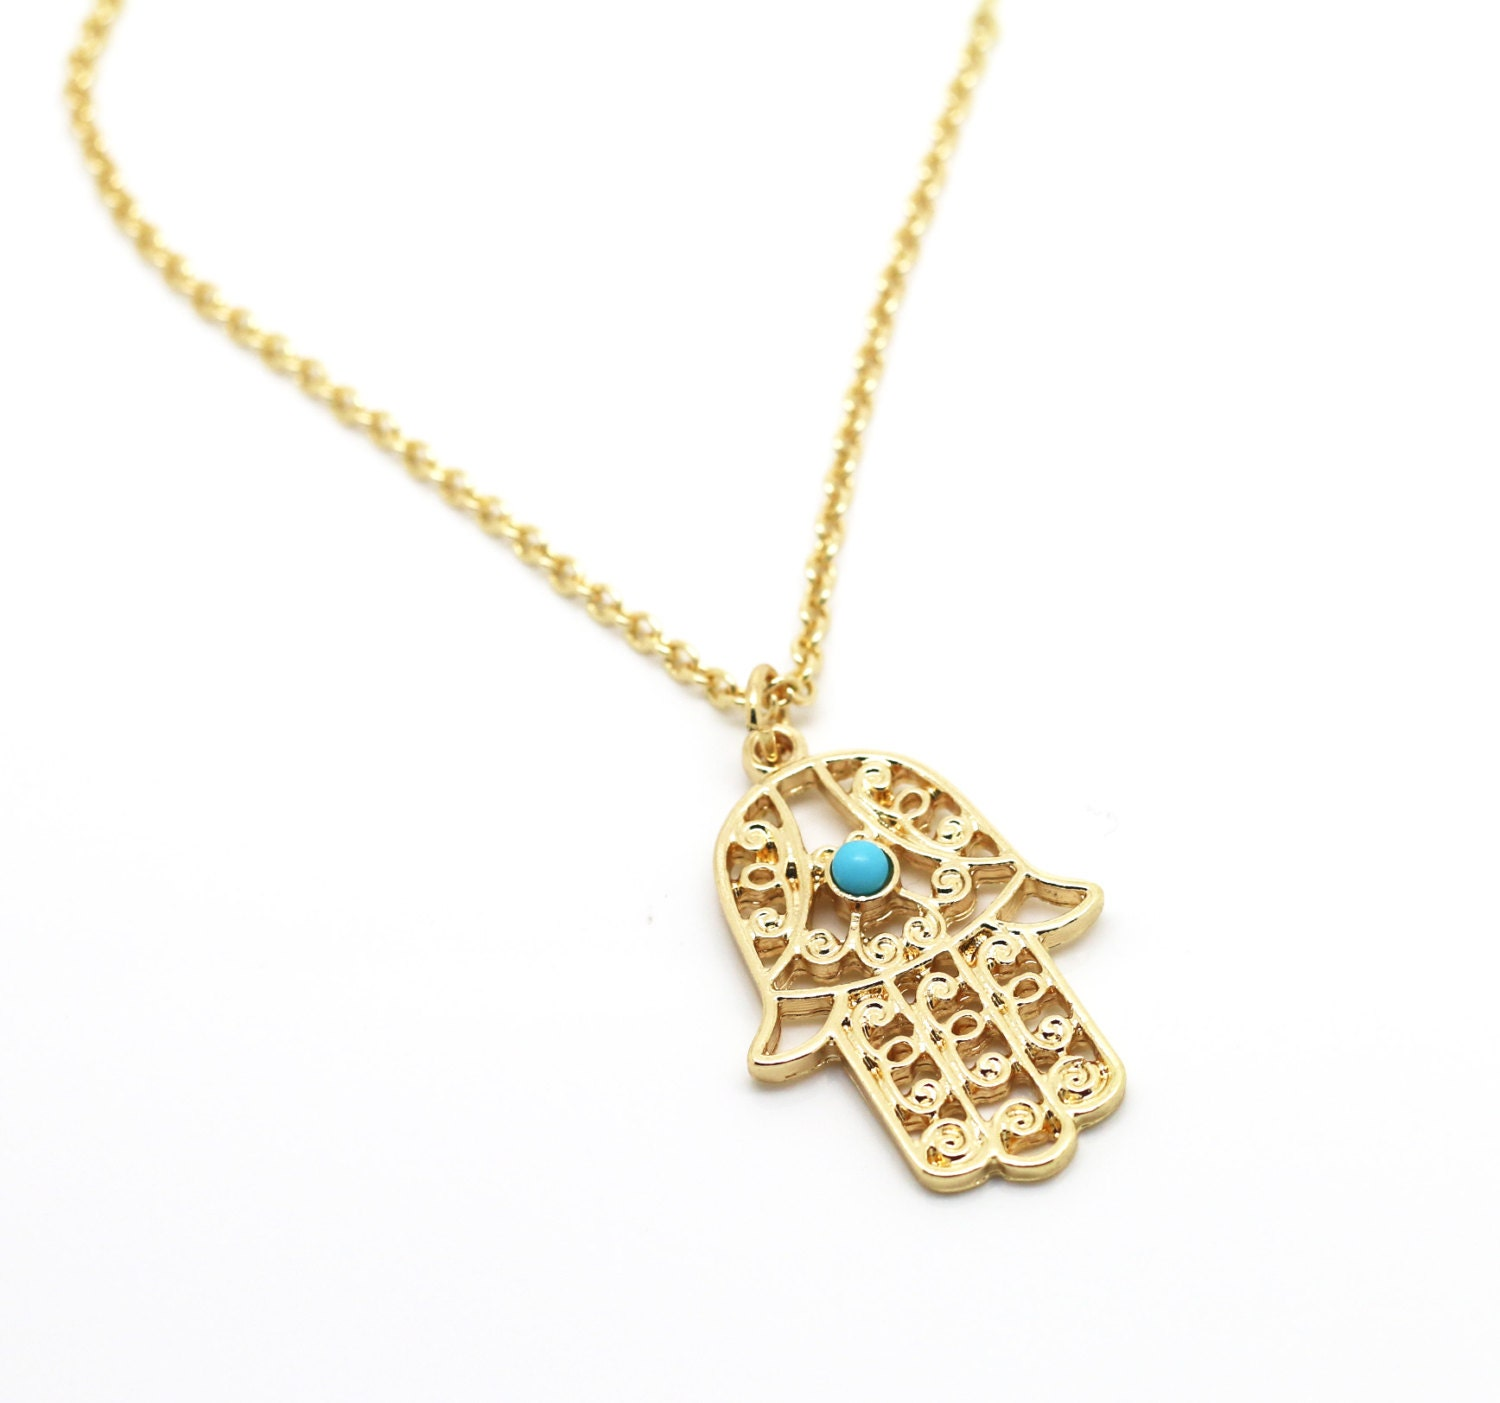 Gold filled hand necklace Hamsa necklace antique silver fatima